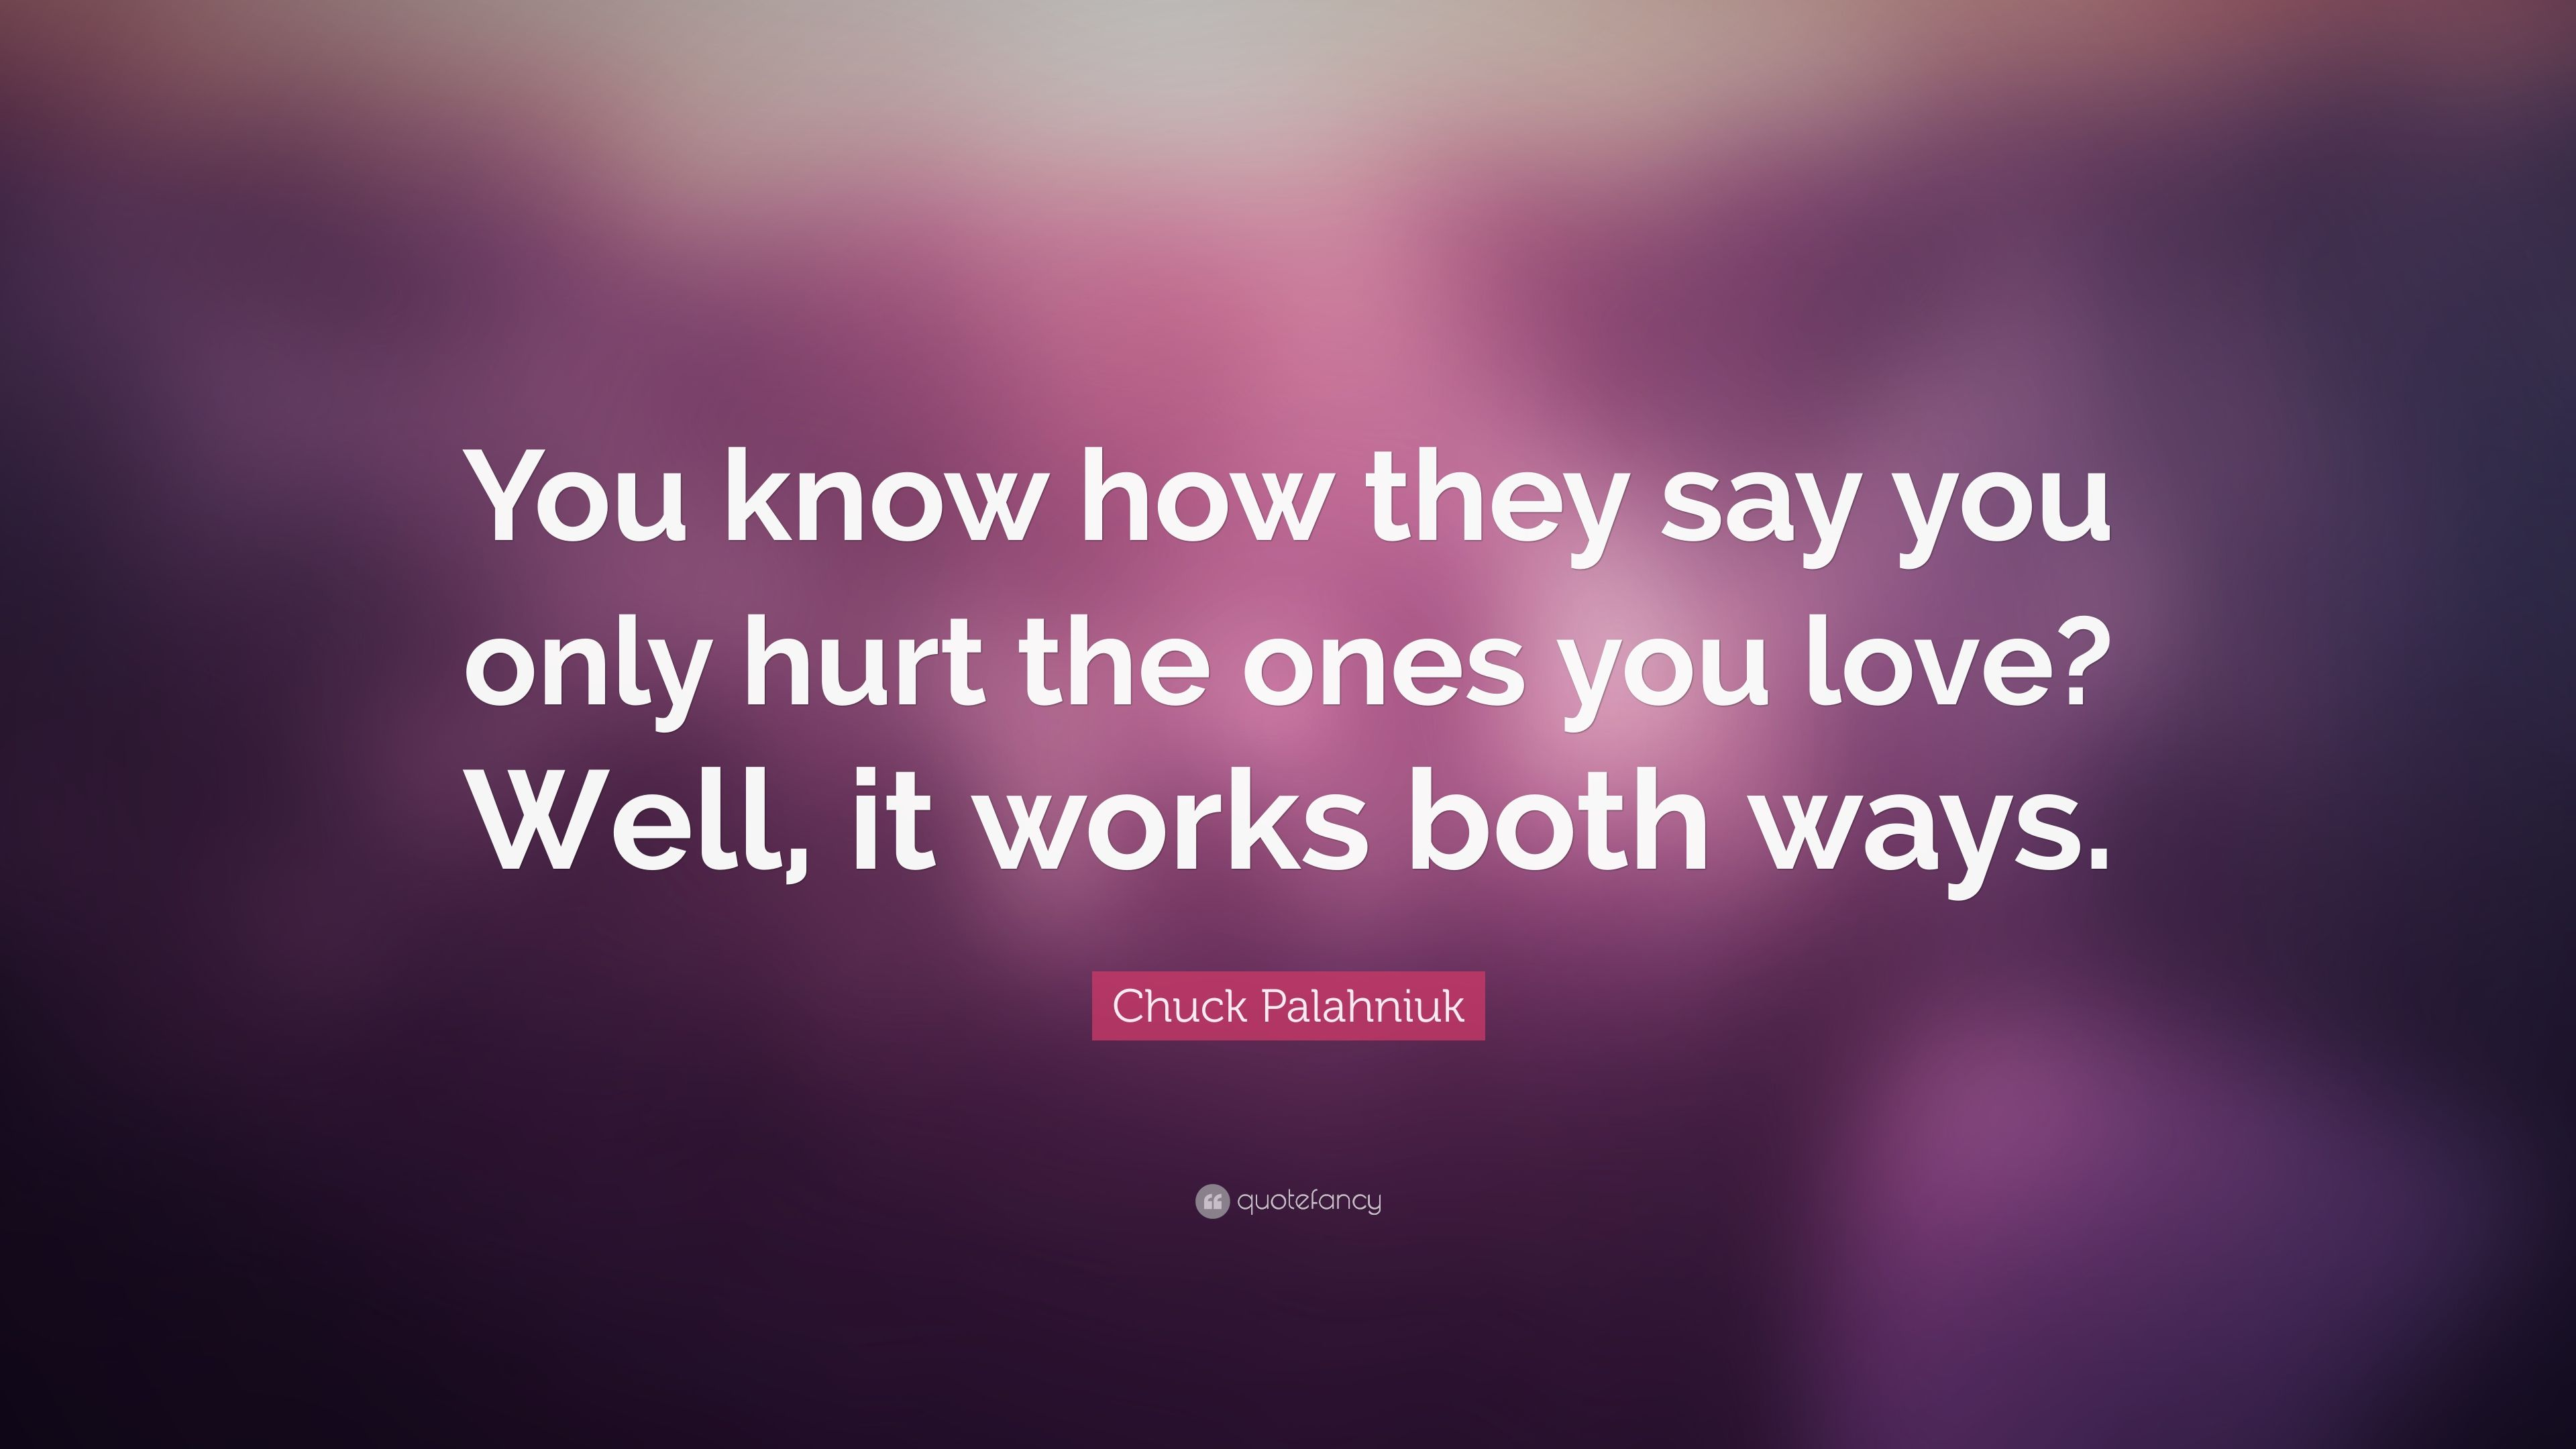 Chuck Palahniuk Quote You Know How They Say You Only Hurt The Ones